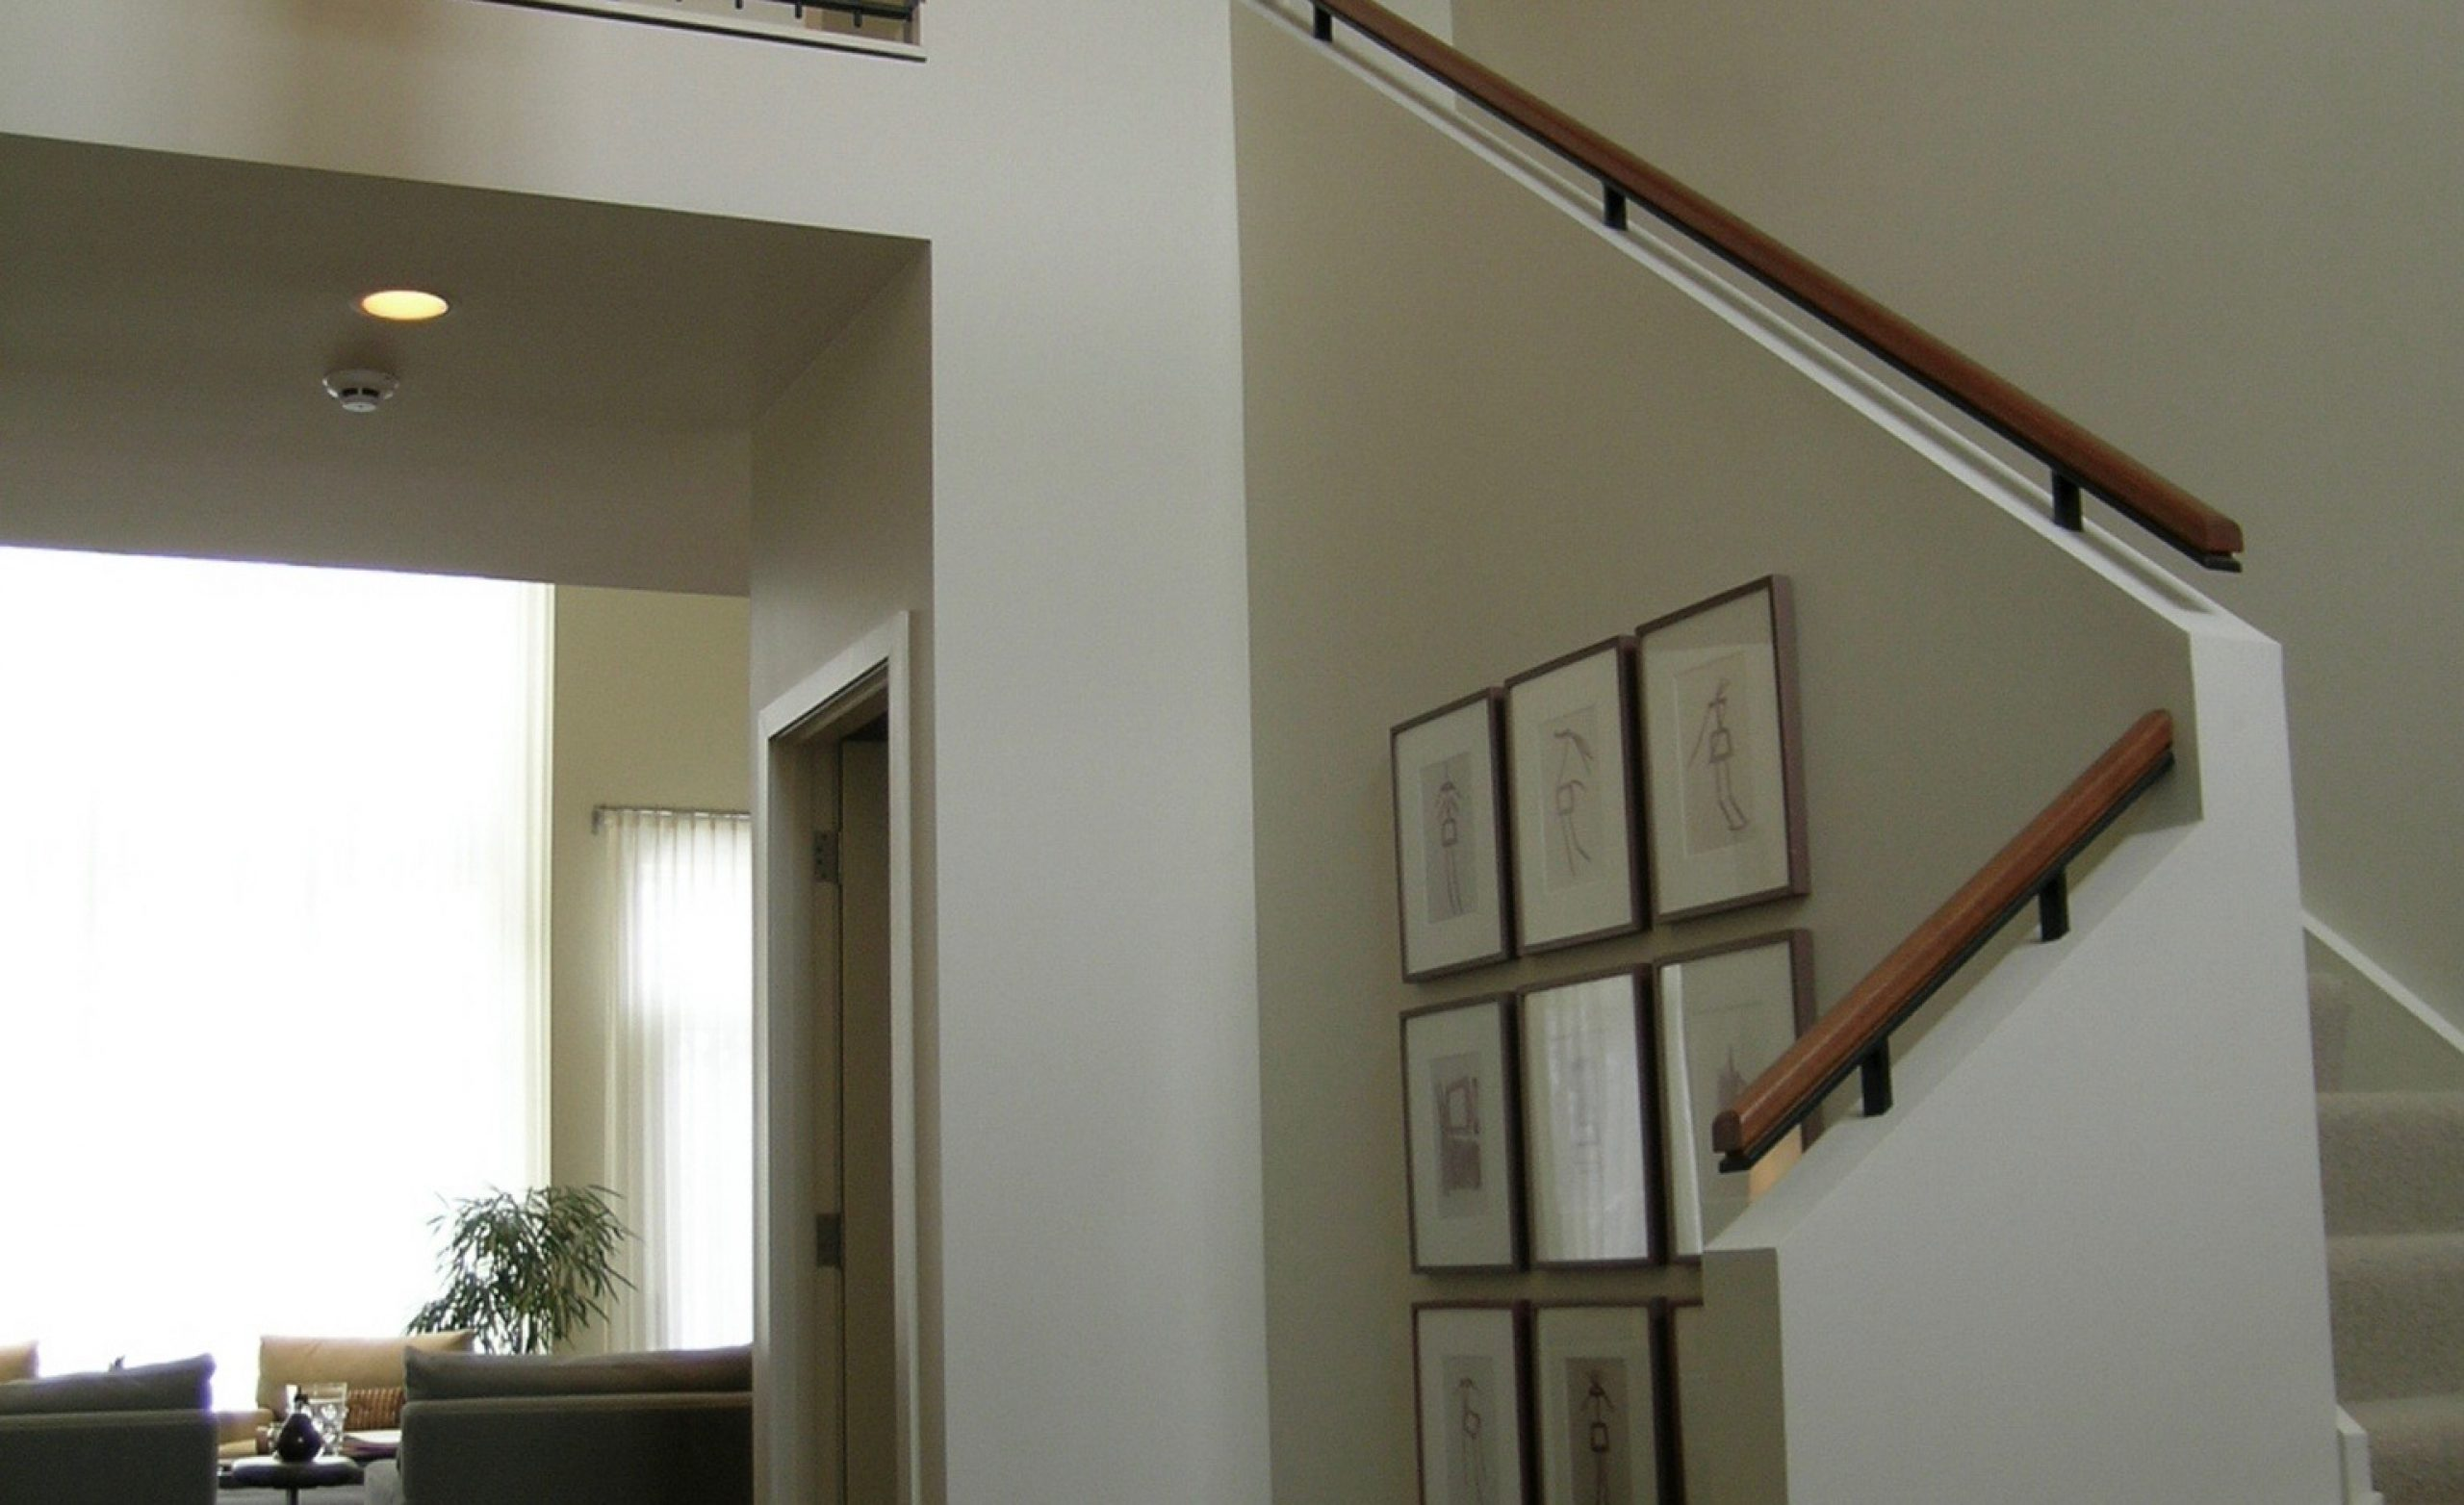 Entryway with staircase and views to living area